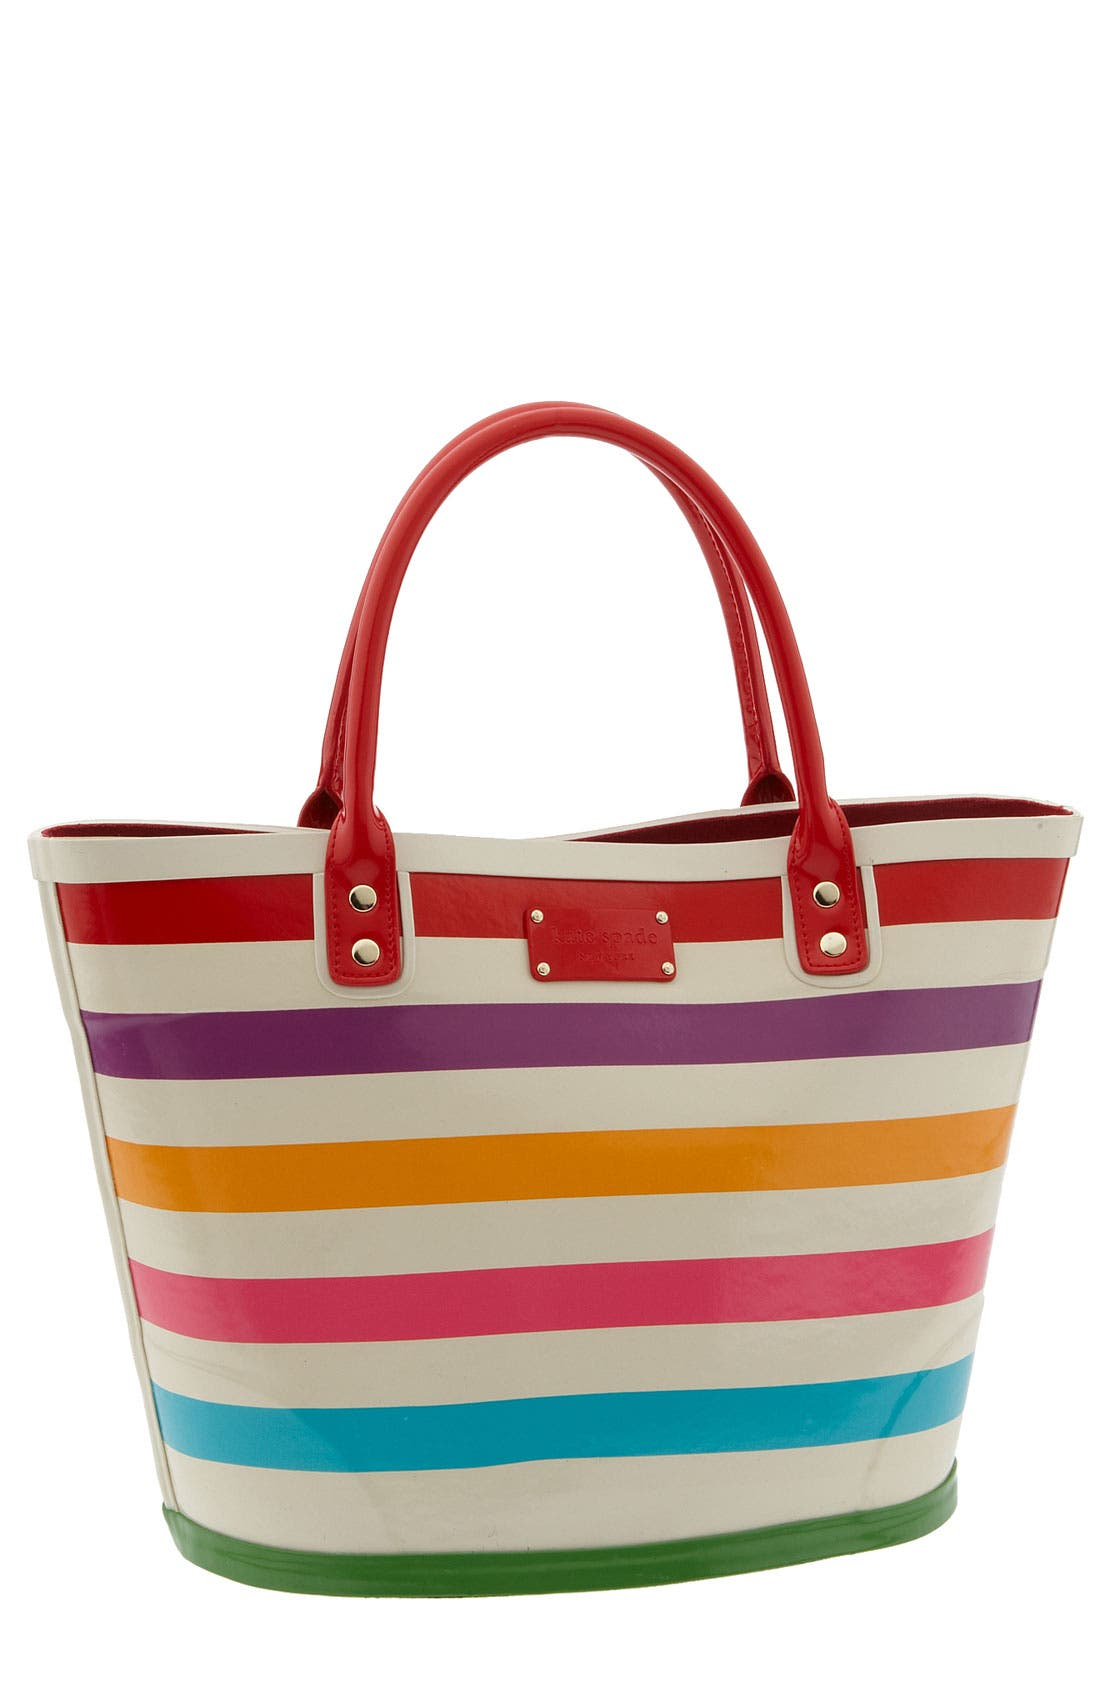 Main Image - kate spade 'wellie magee' rubber tote